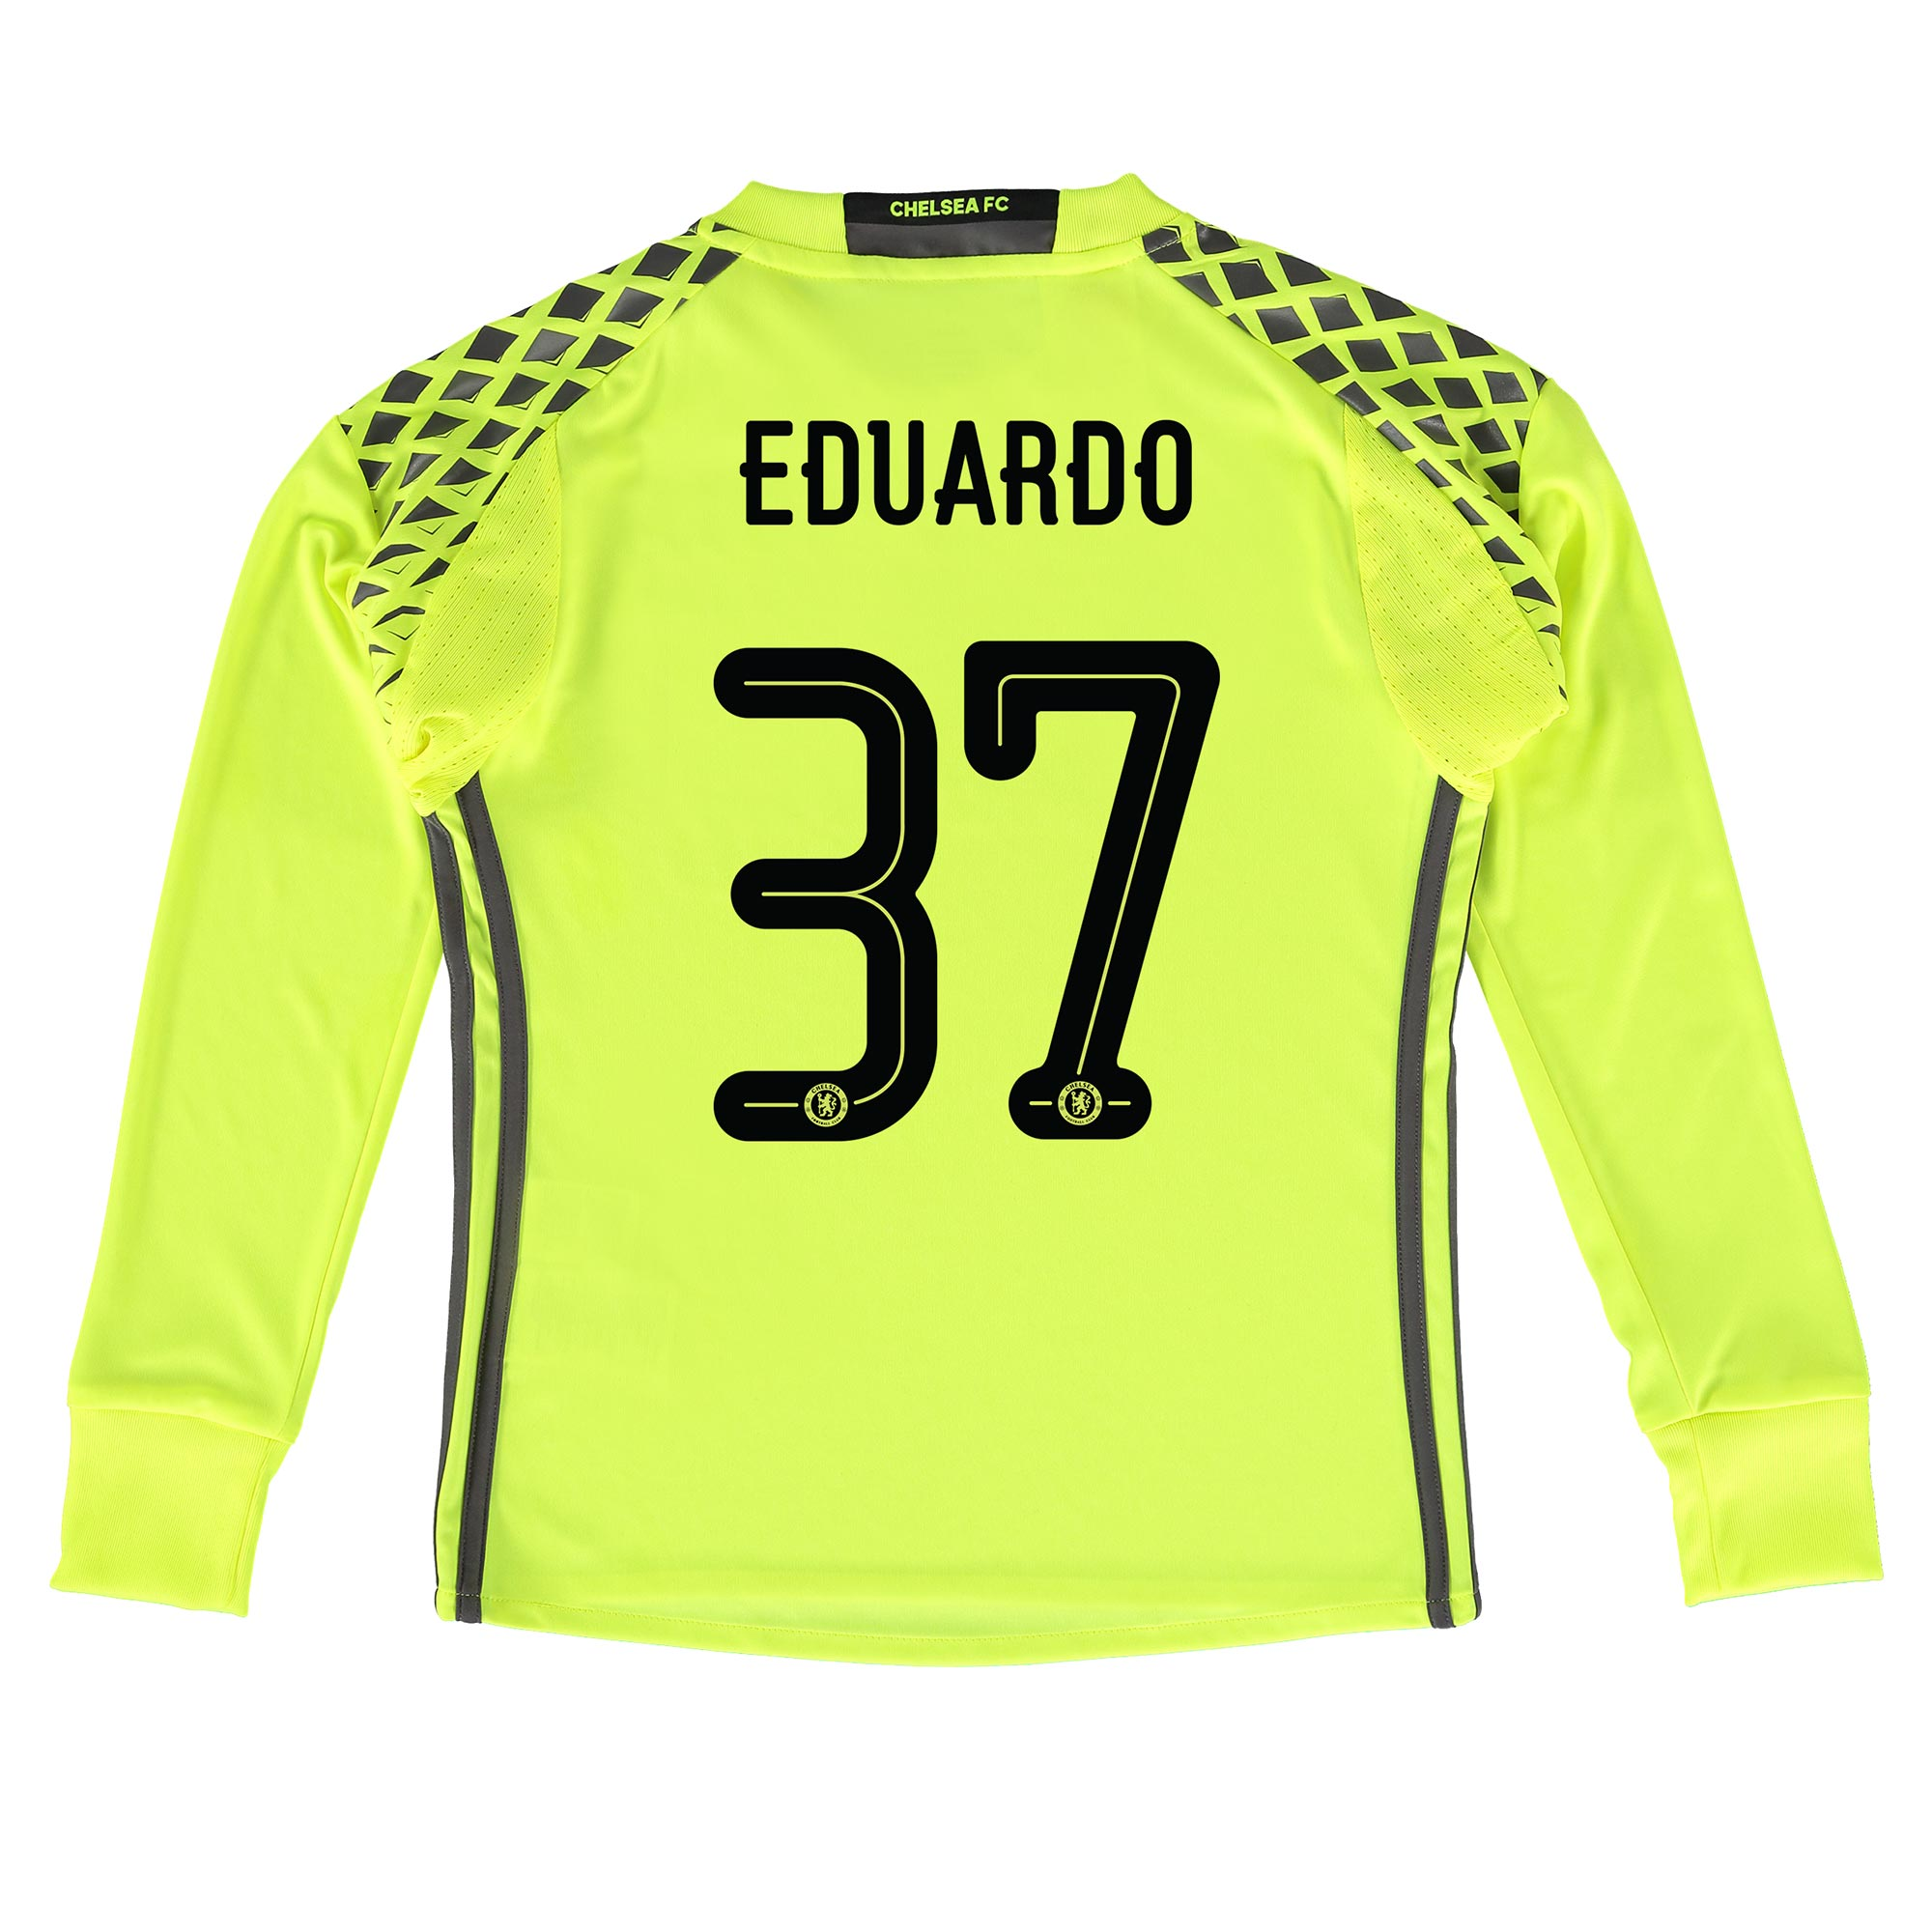 Chelsea Linear Goalkeeper Shirt 16-17 - Kids with Eduardo 37 printing